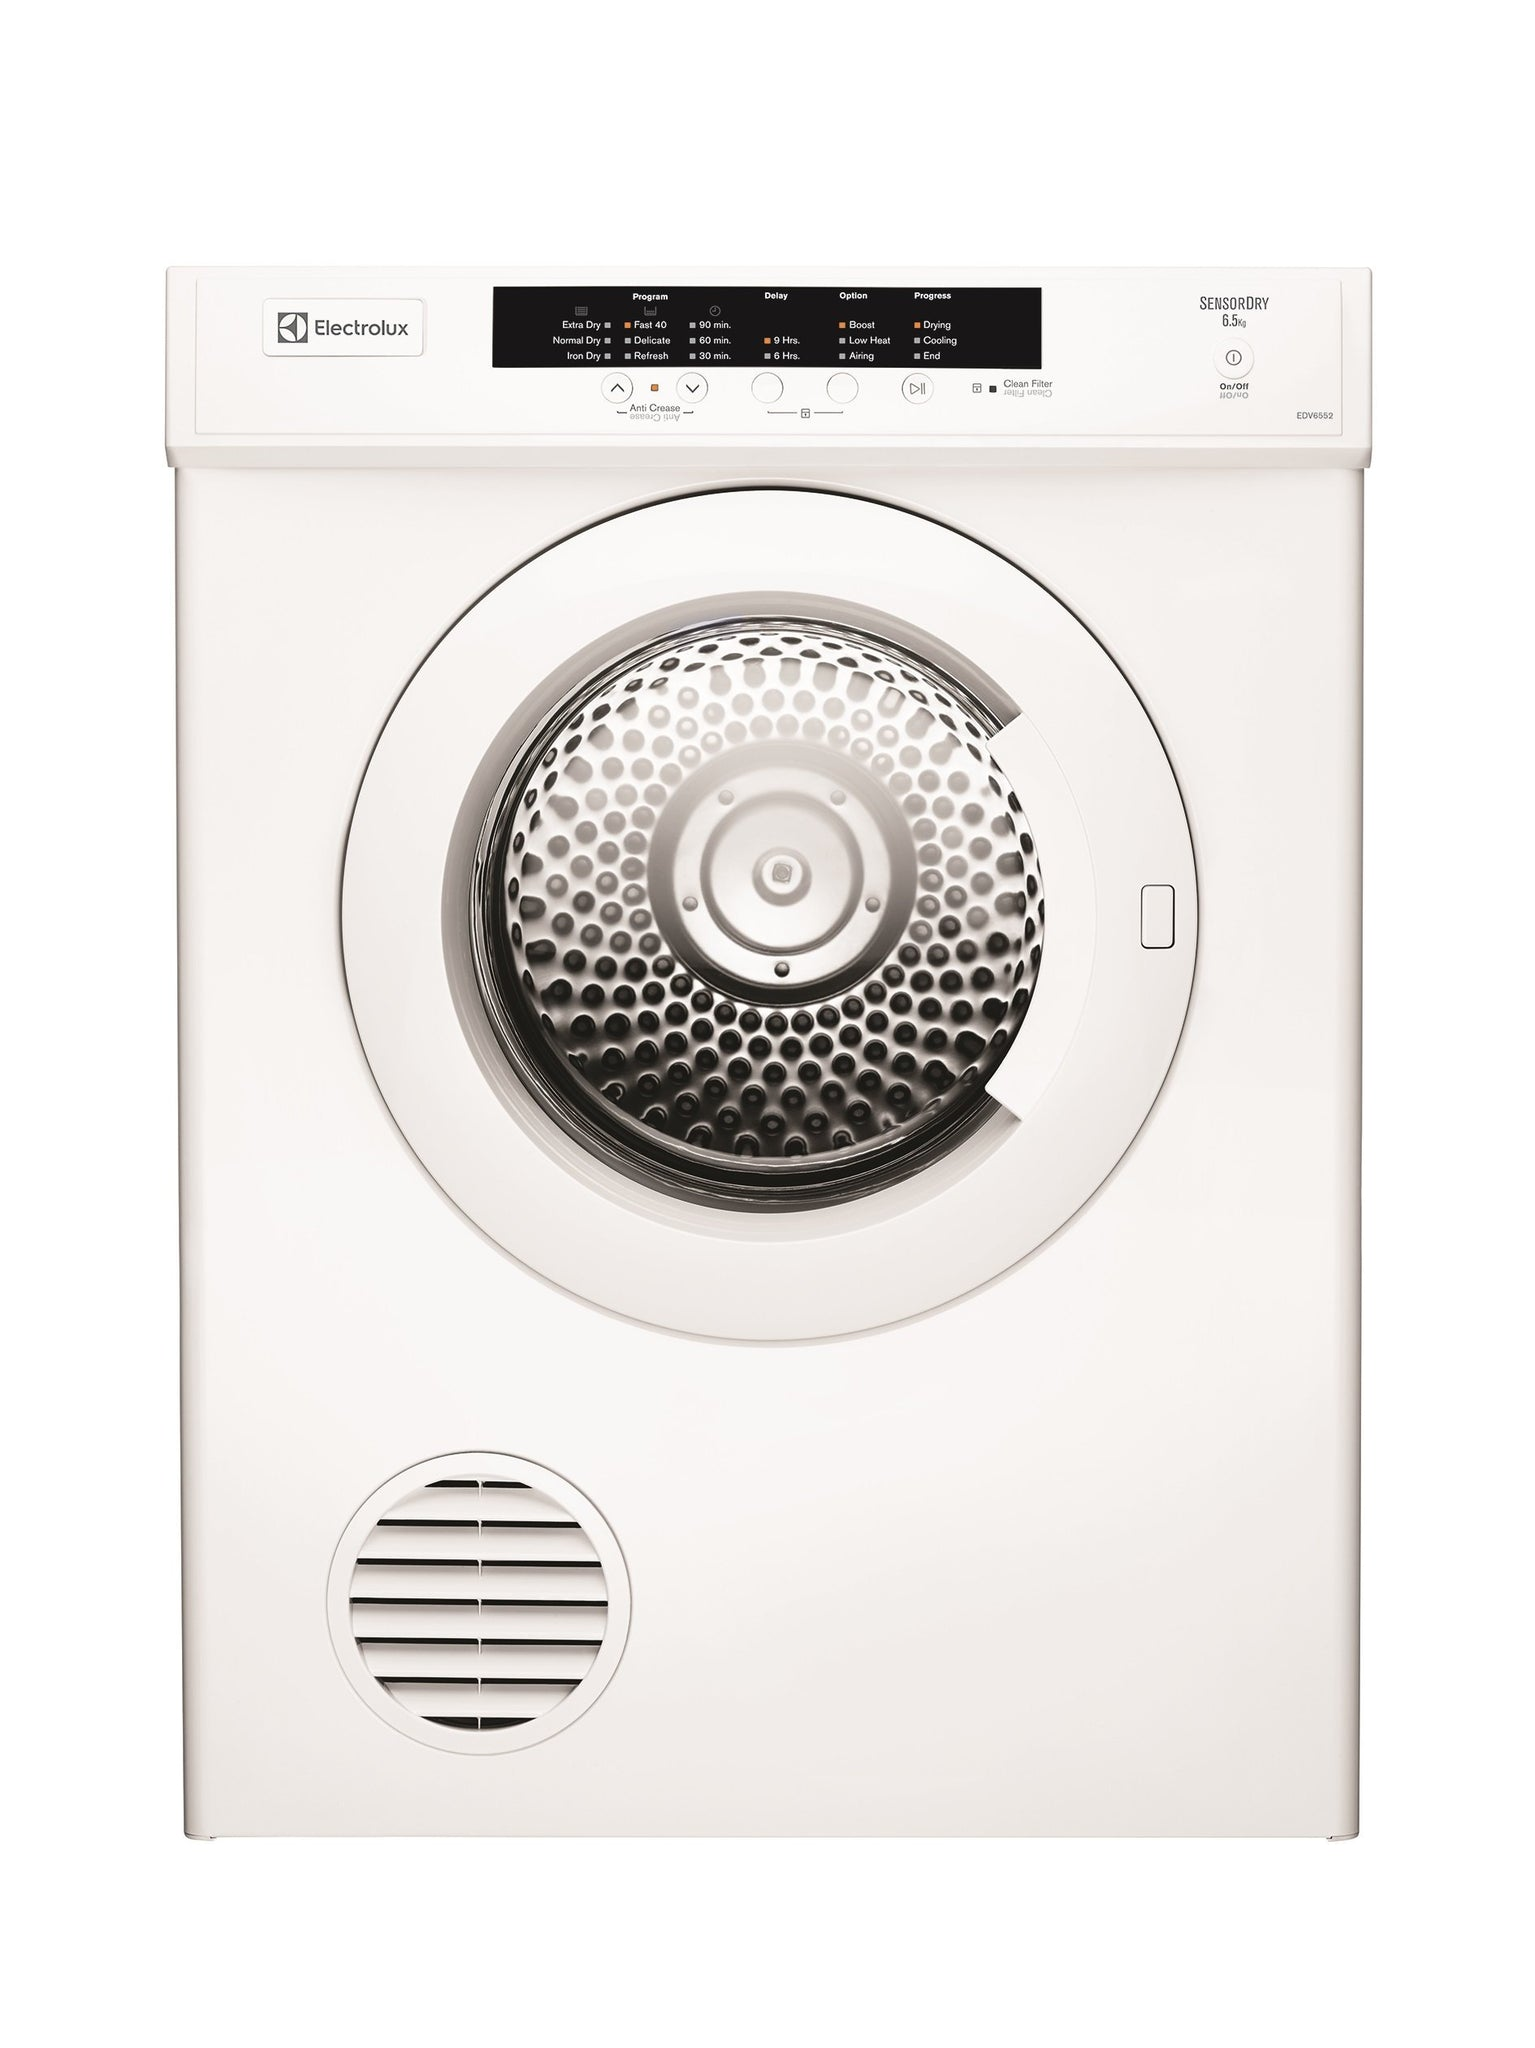 Electrolux EDV6552 6.5kg Sensor Dry Clothes Dryer